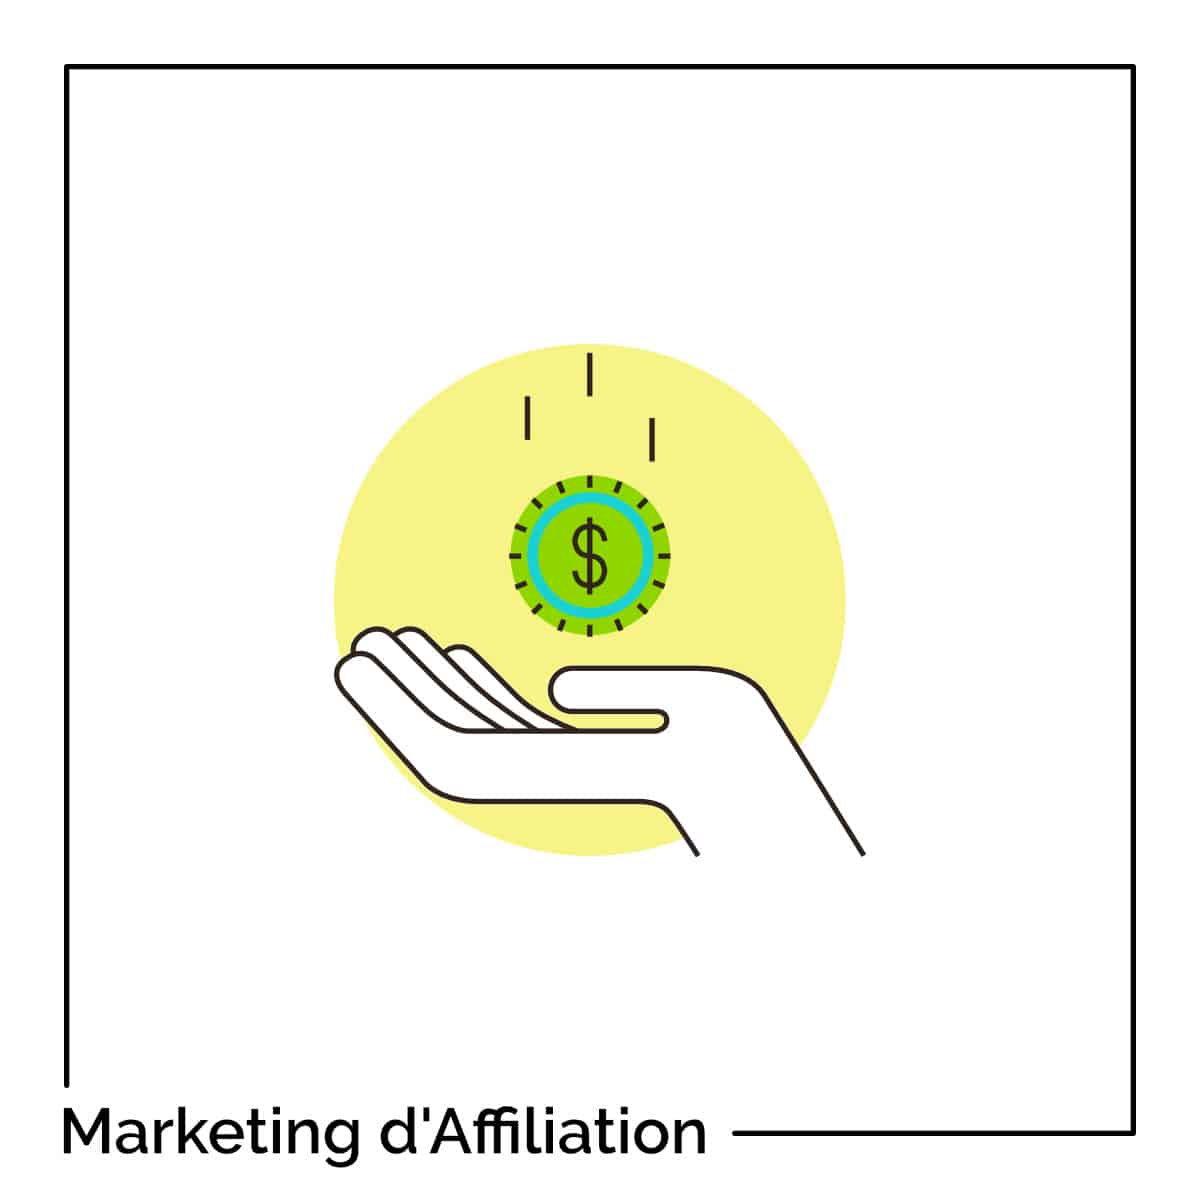 Le marketing d'affiliation : comment gagner de l'argent avec son blog ?